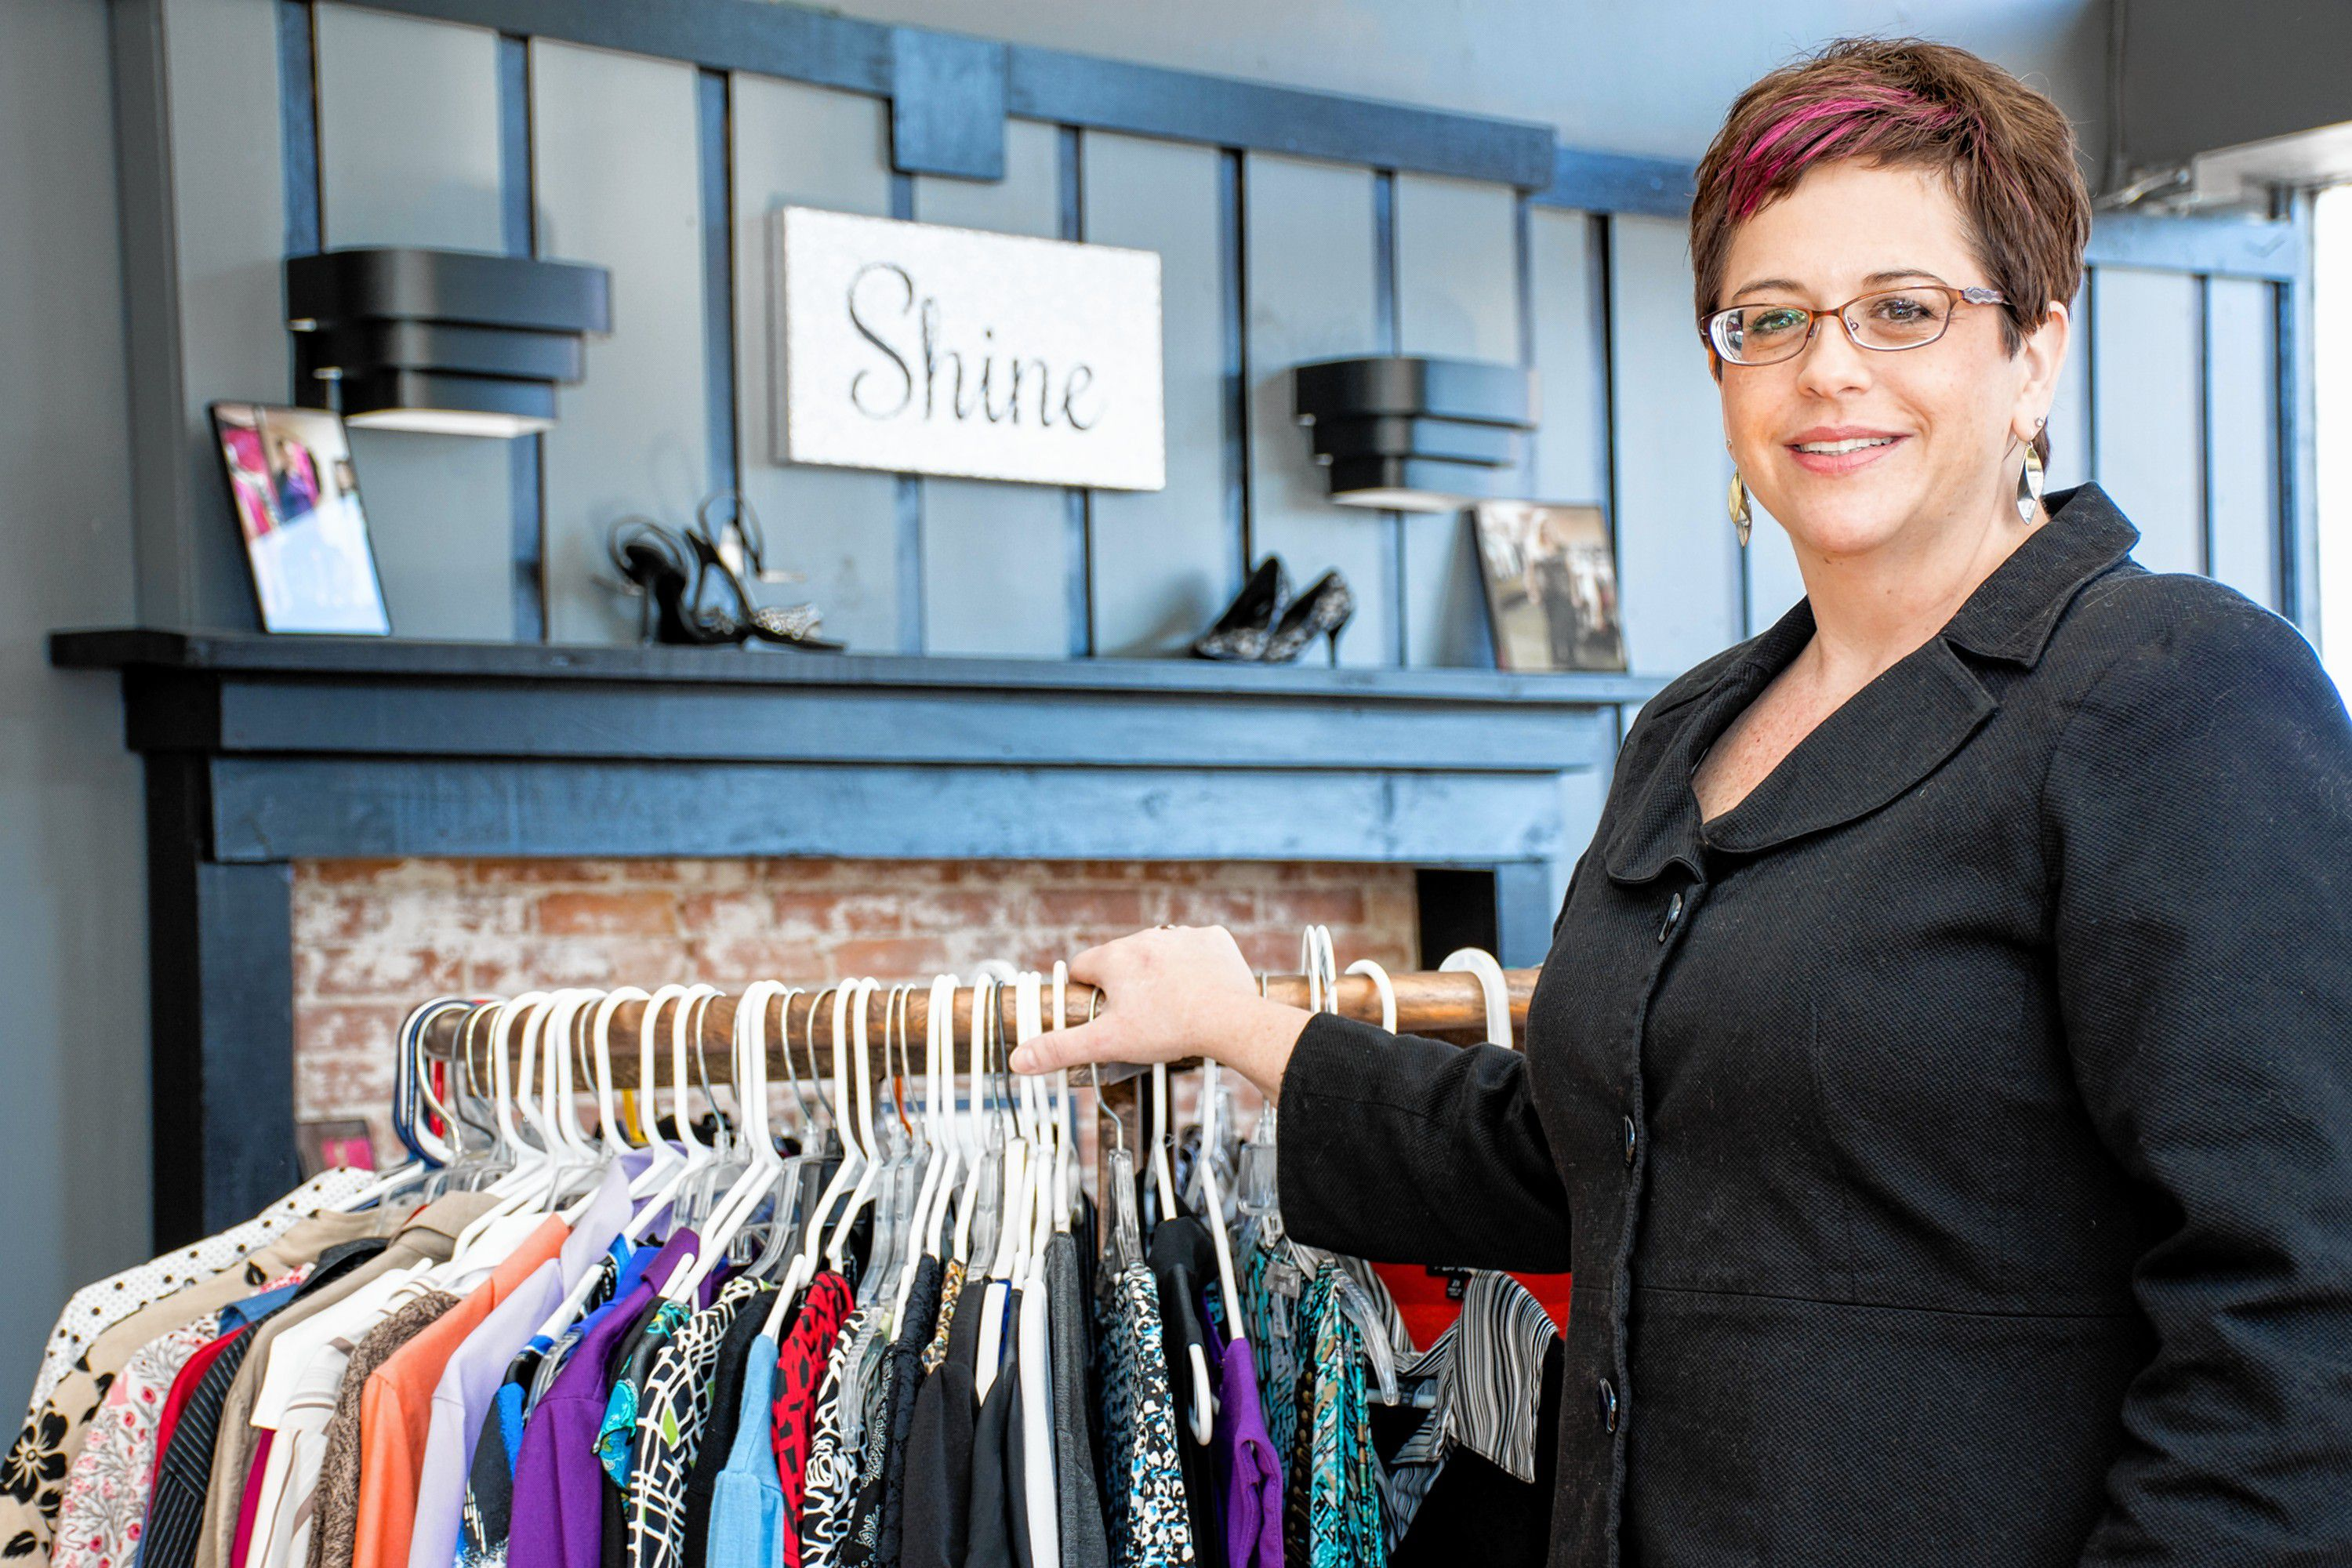 11d3fade02d Shining Success accepts new and gently used clothing for men and women to  look and feel